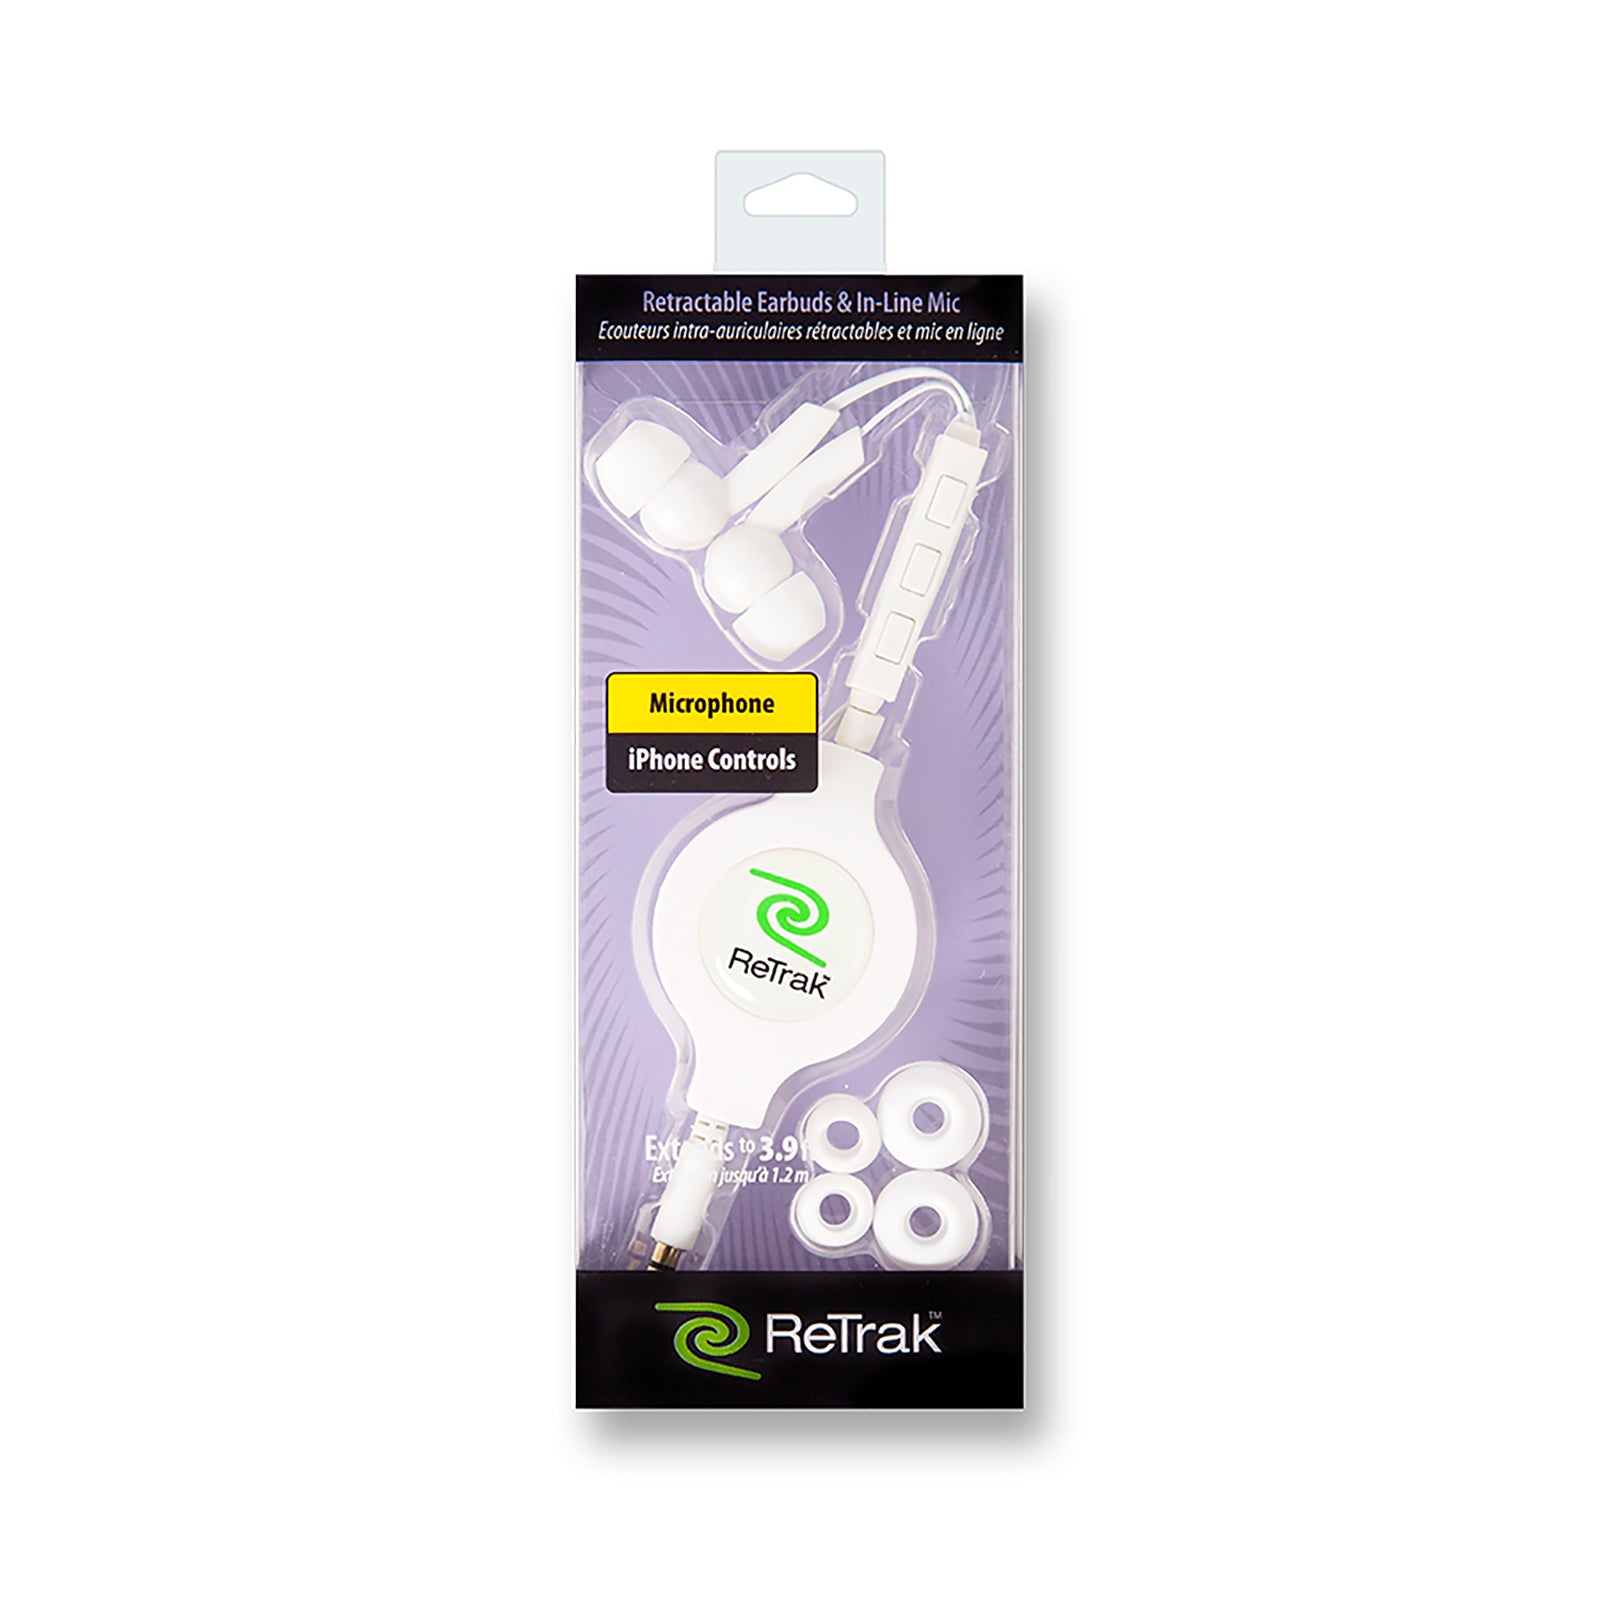 White In-ear Earbuds | In-ear Headphones | Retractable Cable | In-Line Mic & iPhone Controls